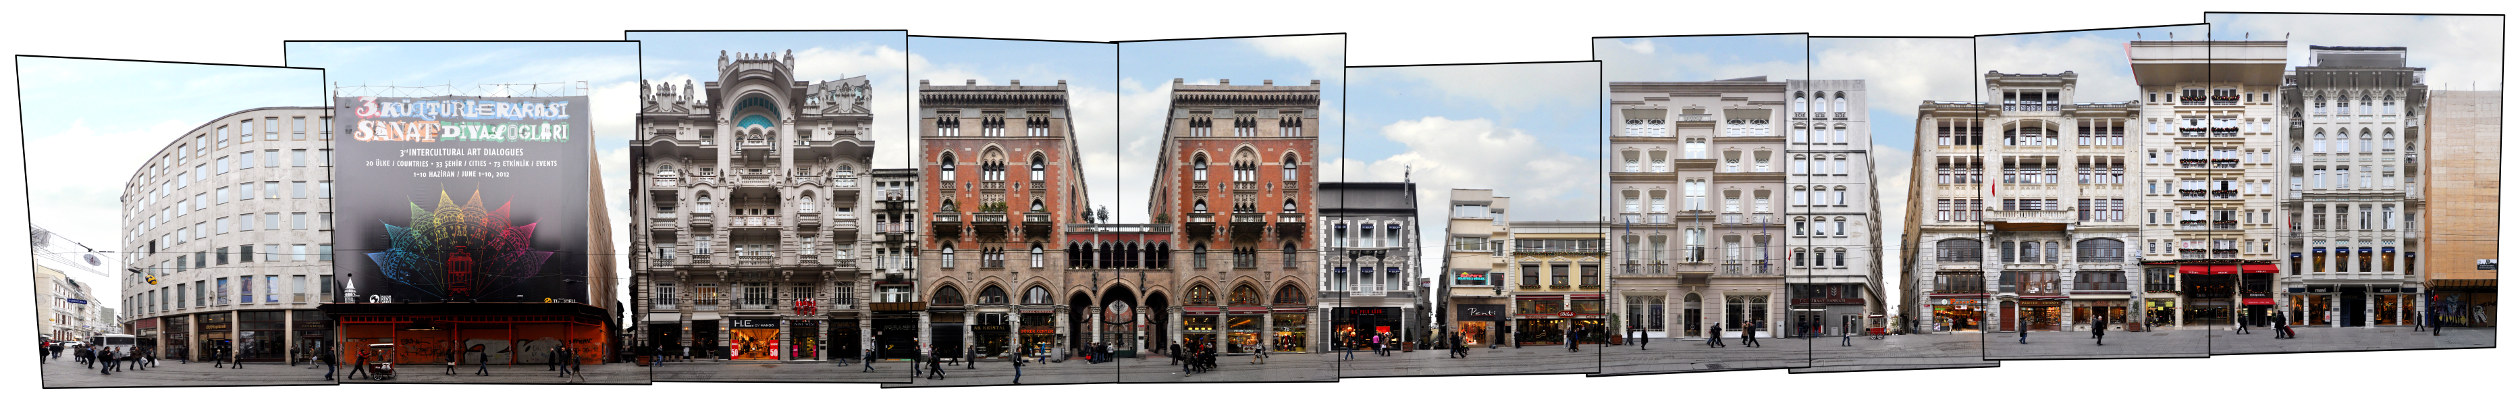 Istanbul Istiklal Caddesi Panorama Architecture